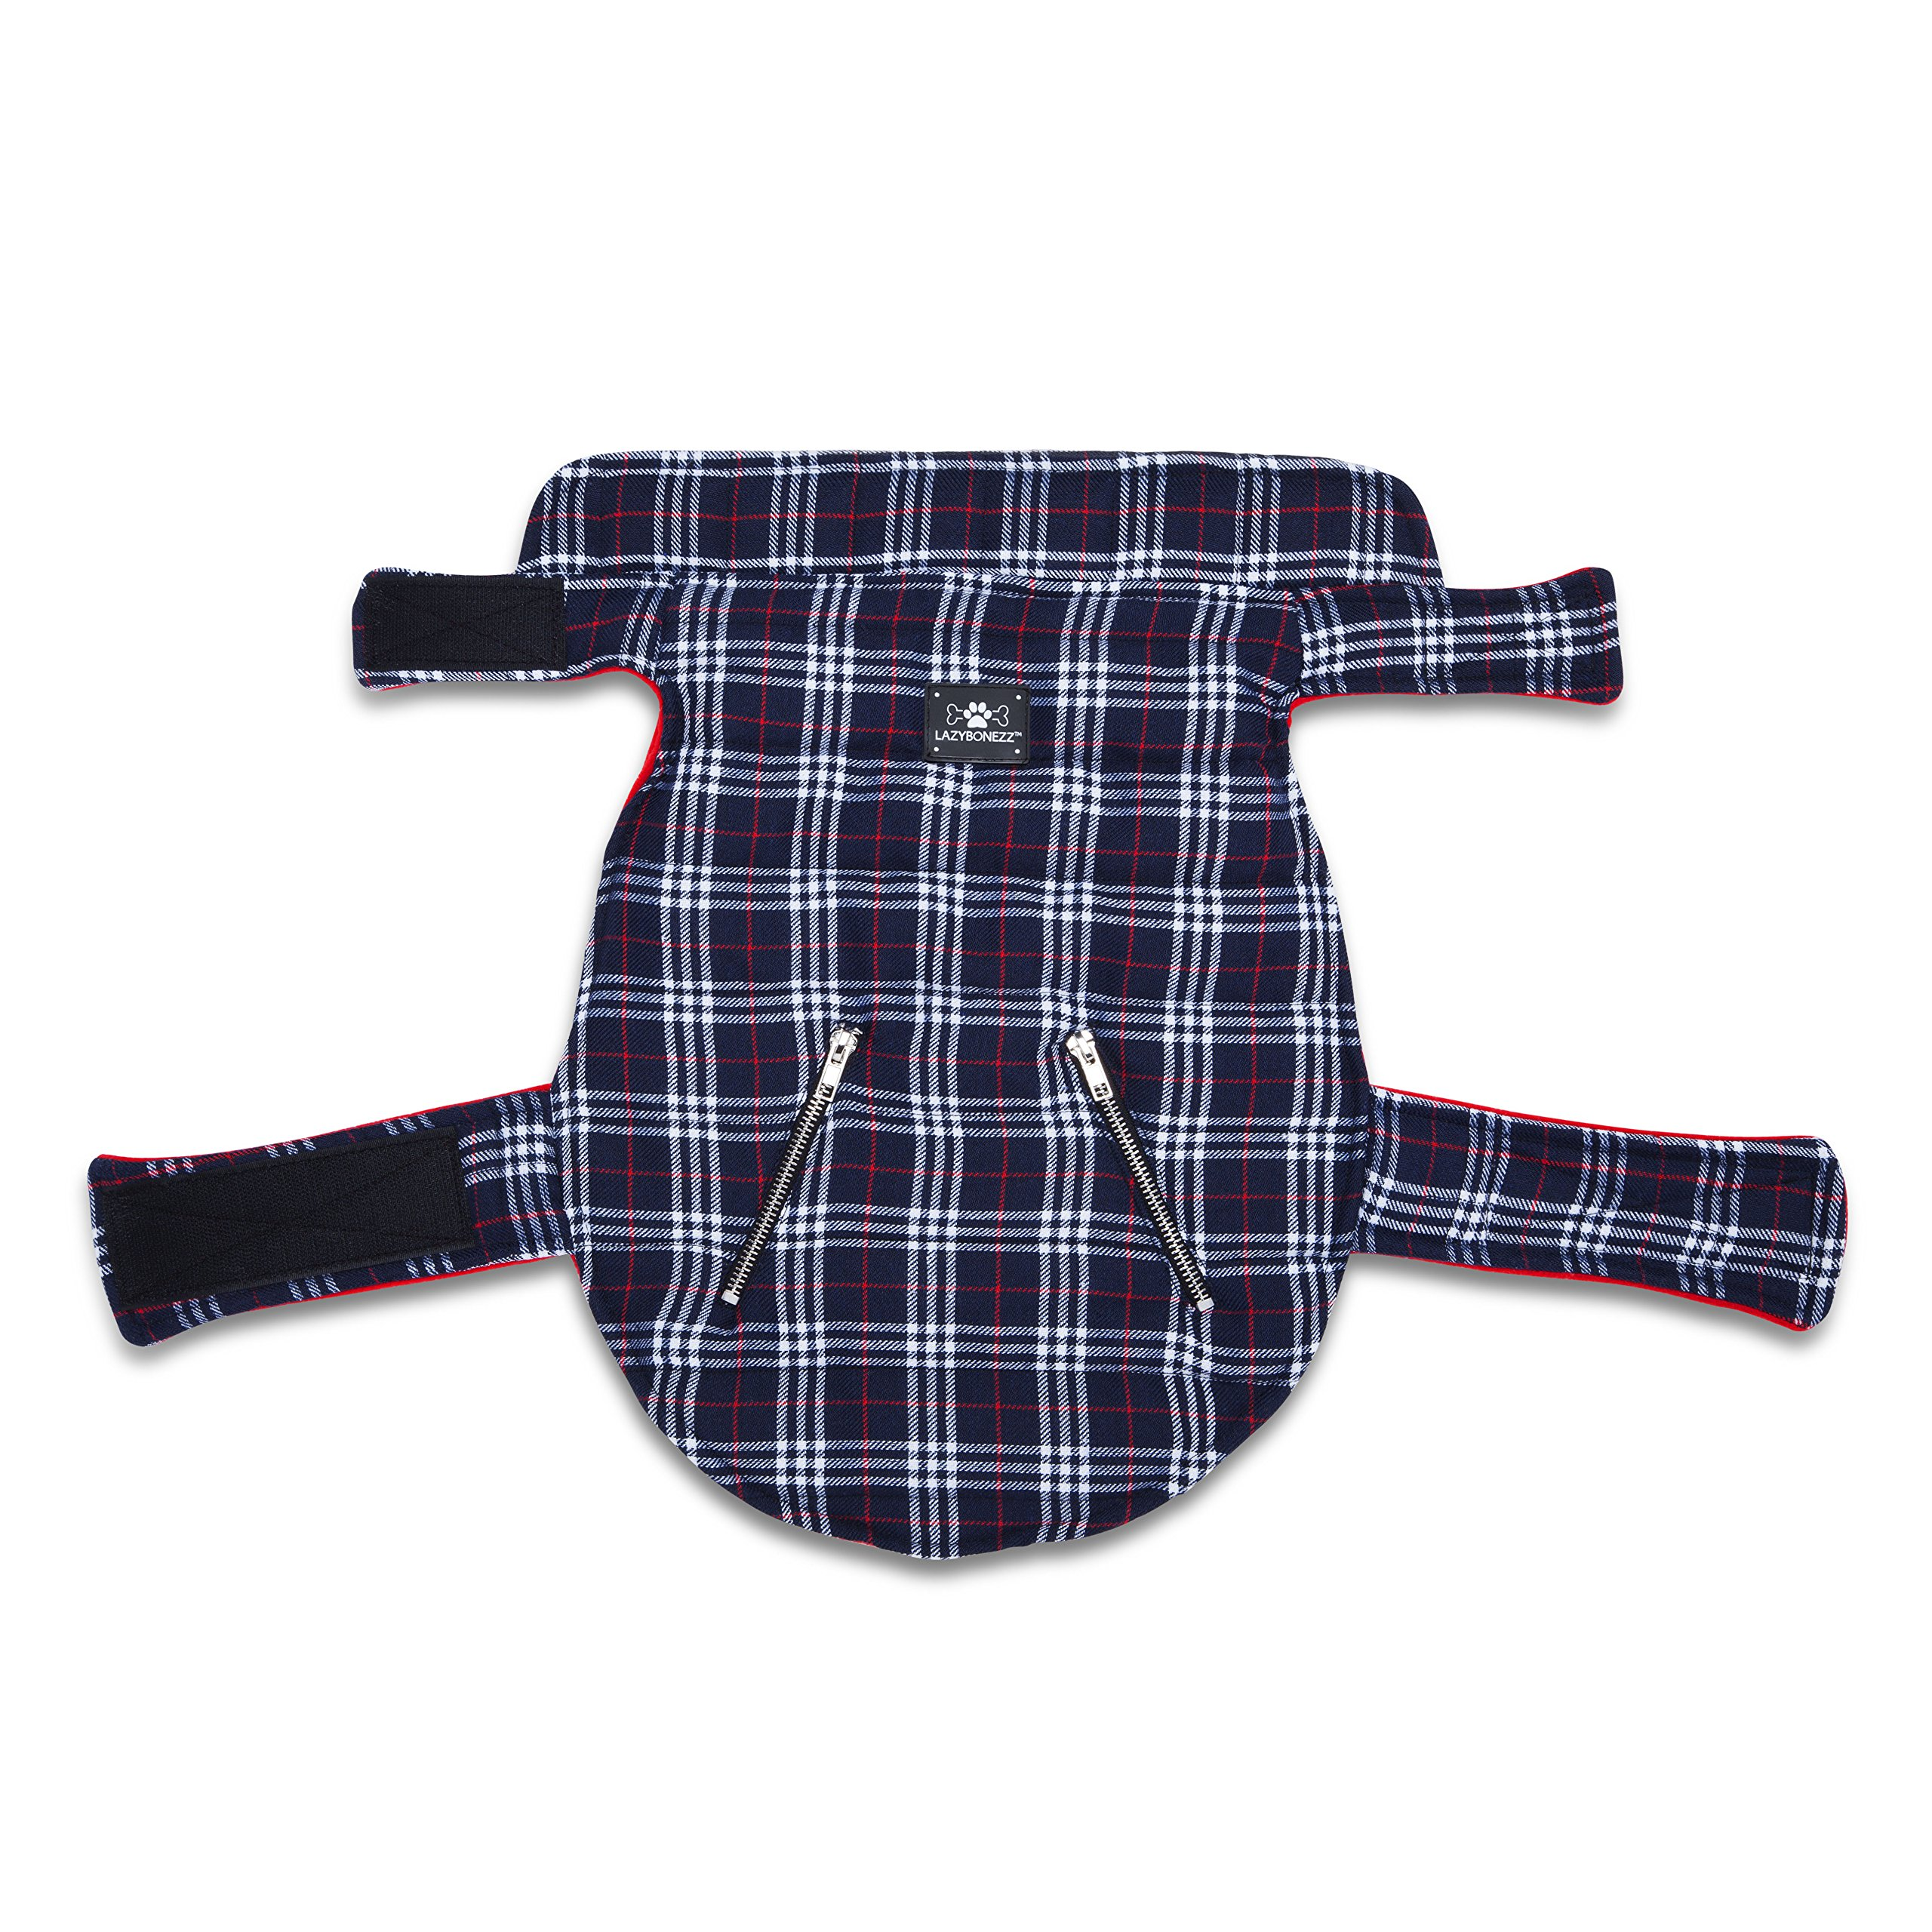 LazyBonezz Pet Coat with Fleece Lining Red and Blue Plaid XS